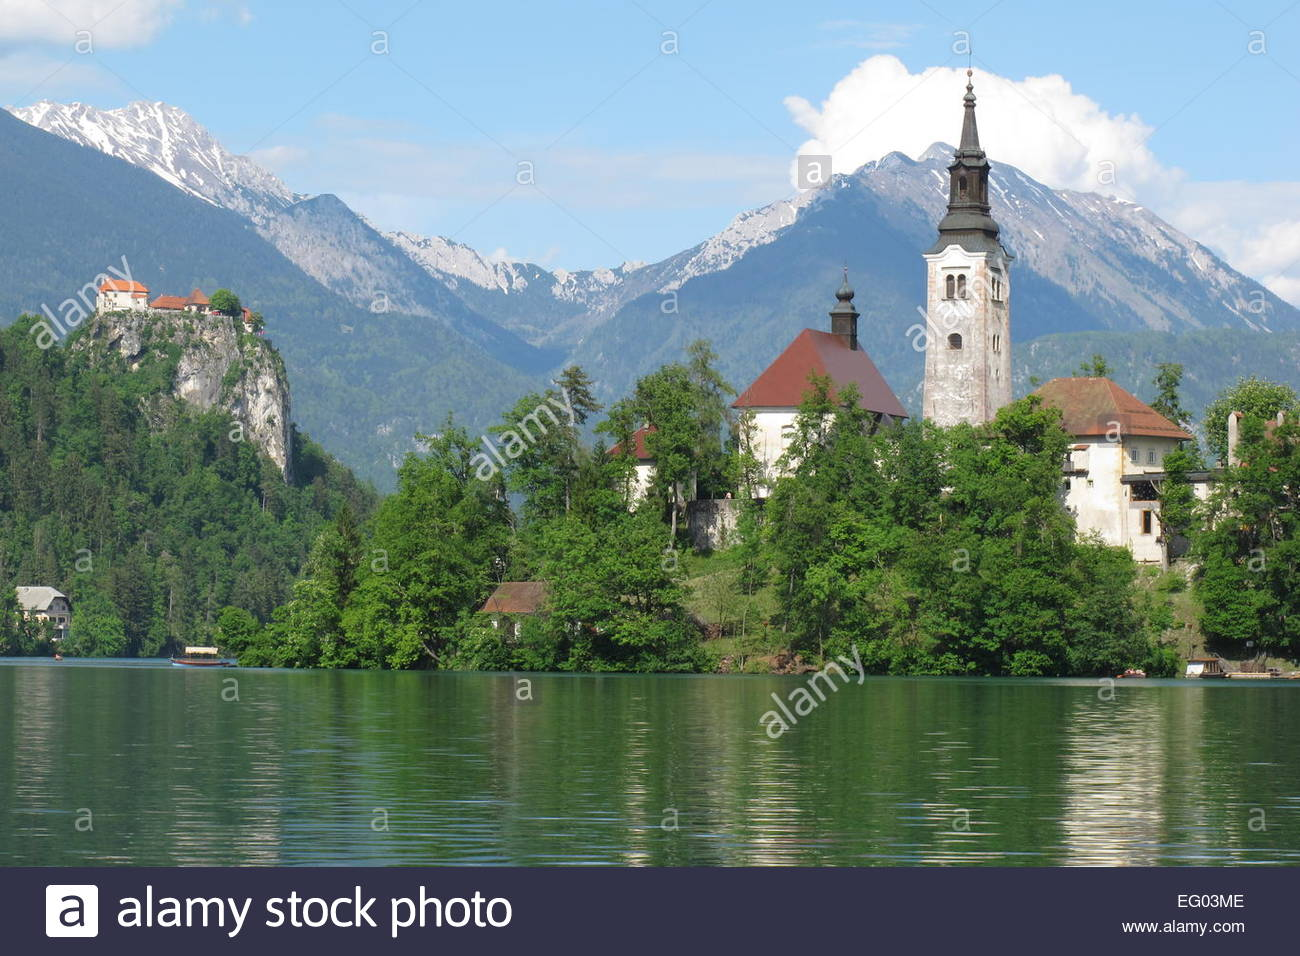 Slovenia nature lake bled church cathedral wallpaper | 2560x1440 ...